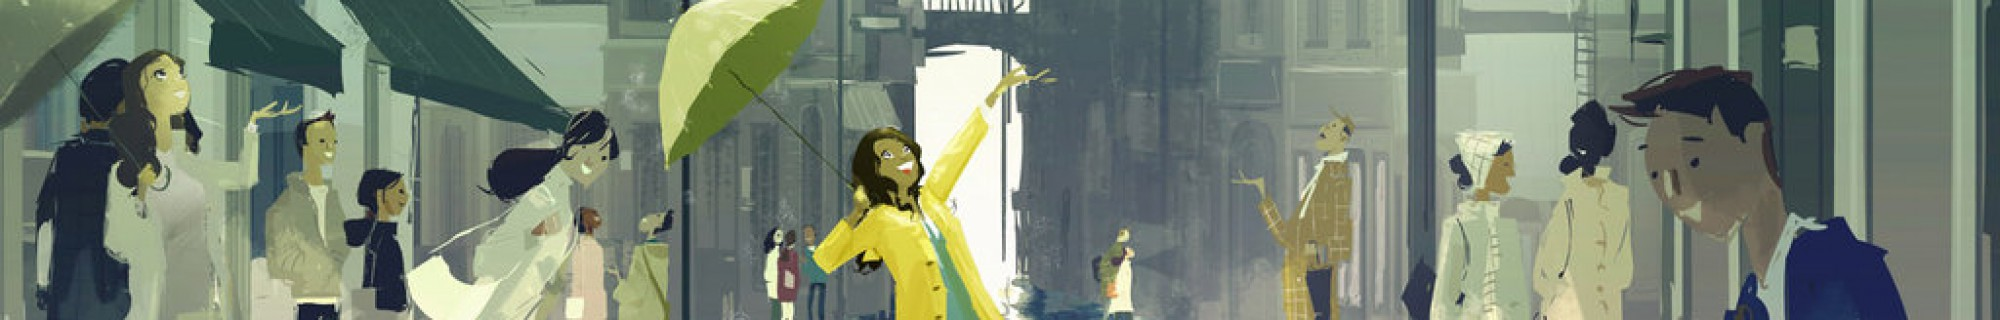 cropped-then_the_rain_stopped__by_pascalcampion-d6aw8f23